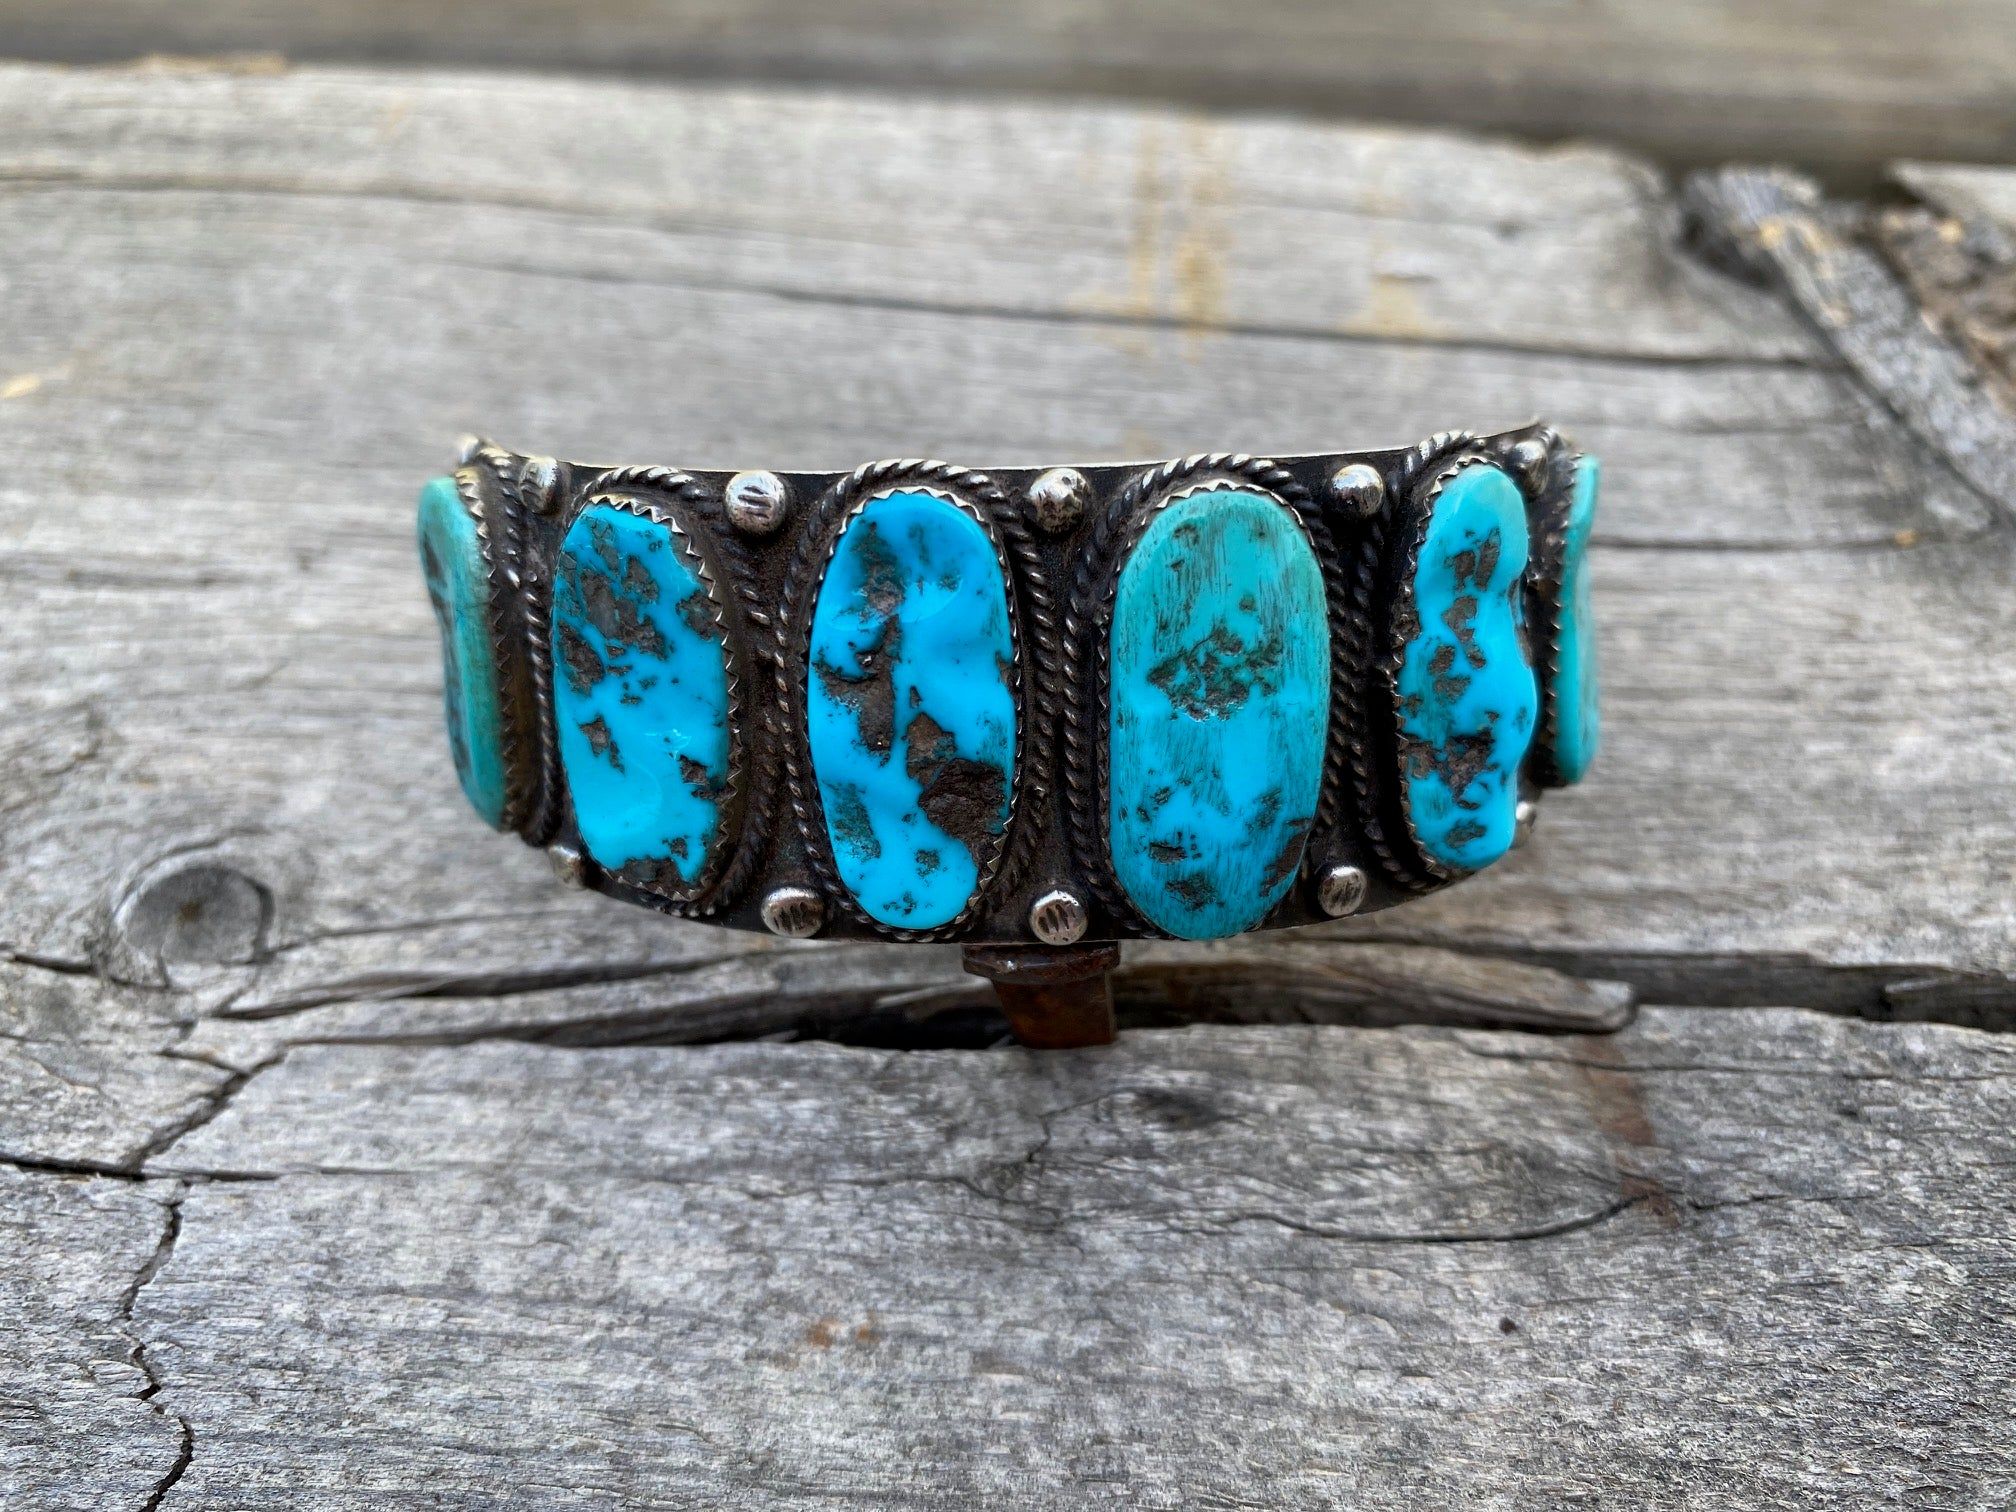 Vintage Silver and Turquoise Row Bracelet